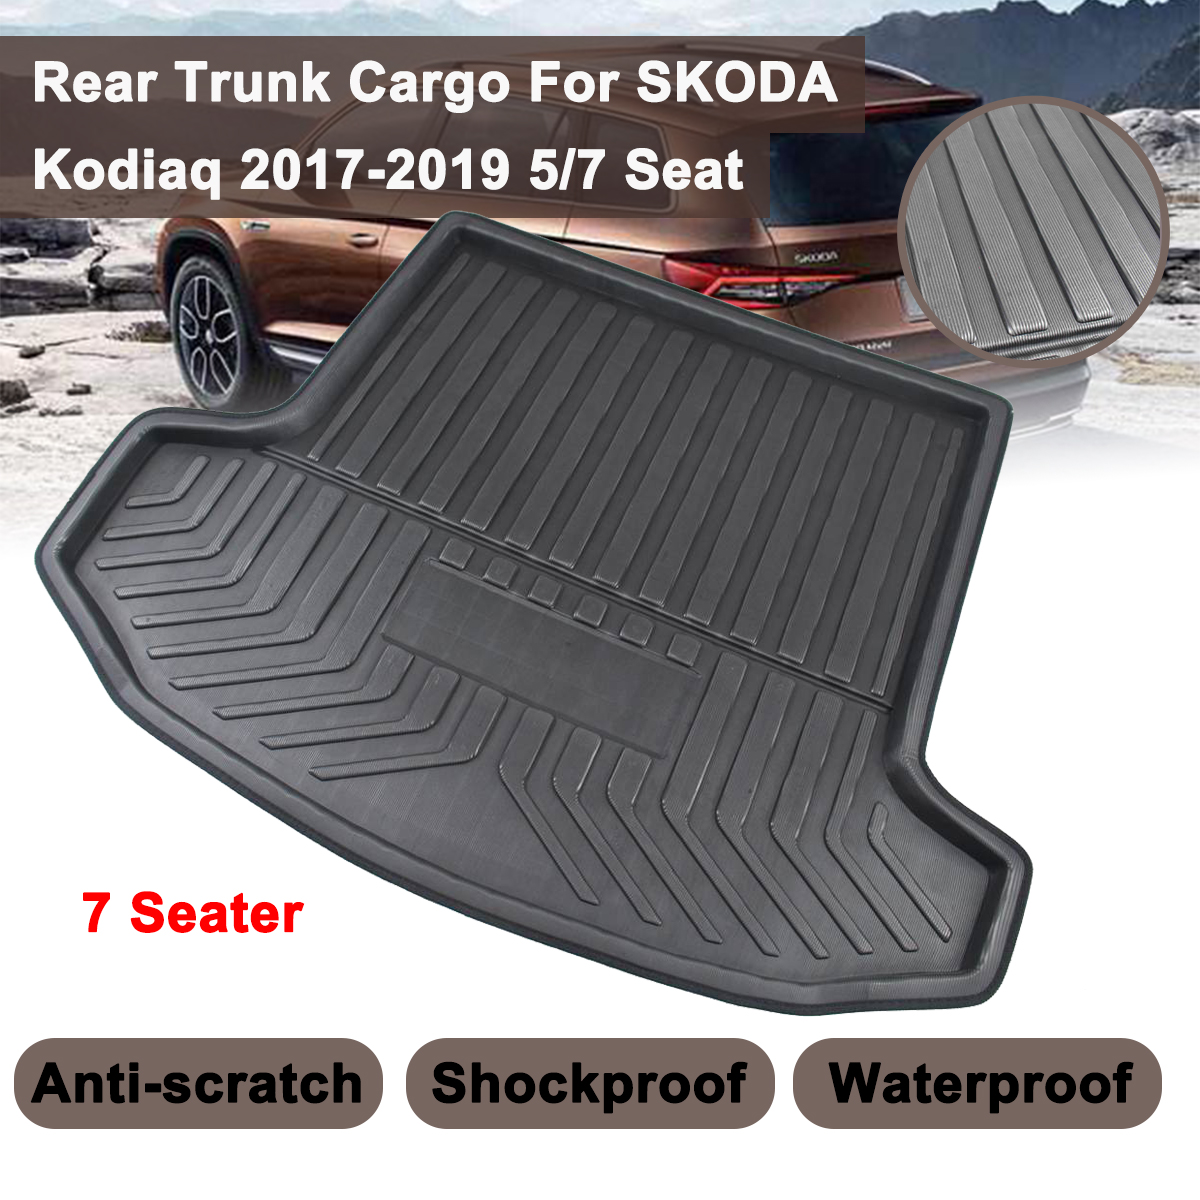 For SKODA Kodiaq 5/7 Seat Seater 2017 2018 2019 Matt Mat Floor Carpet Kick Pad Car Cargo Liner Boot Tray Rear Trunk Cover